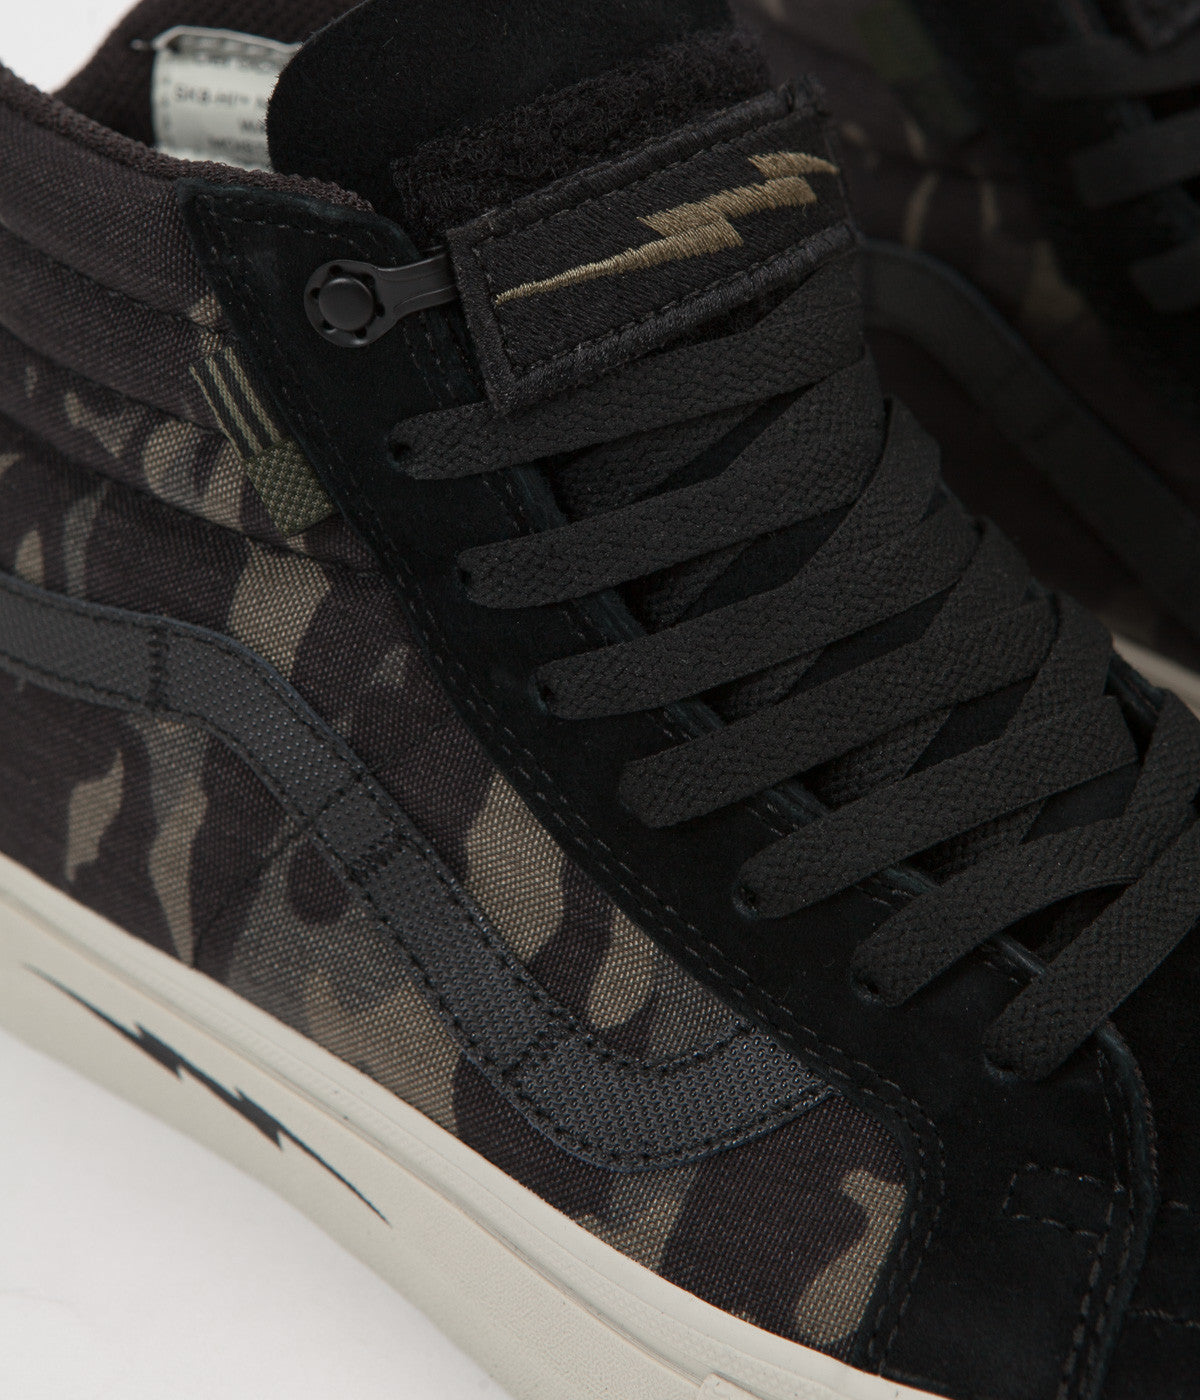 a377e2e2d9 ... Vans Sk8-Hi Notchback (Defcon) Shoes - Black MultiCam ...